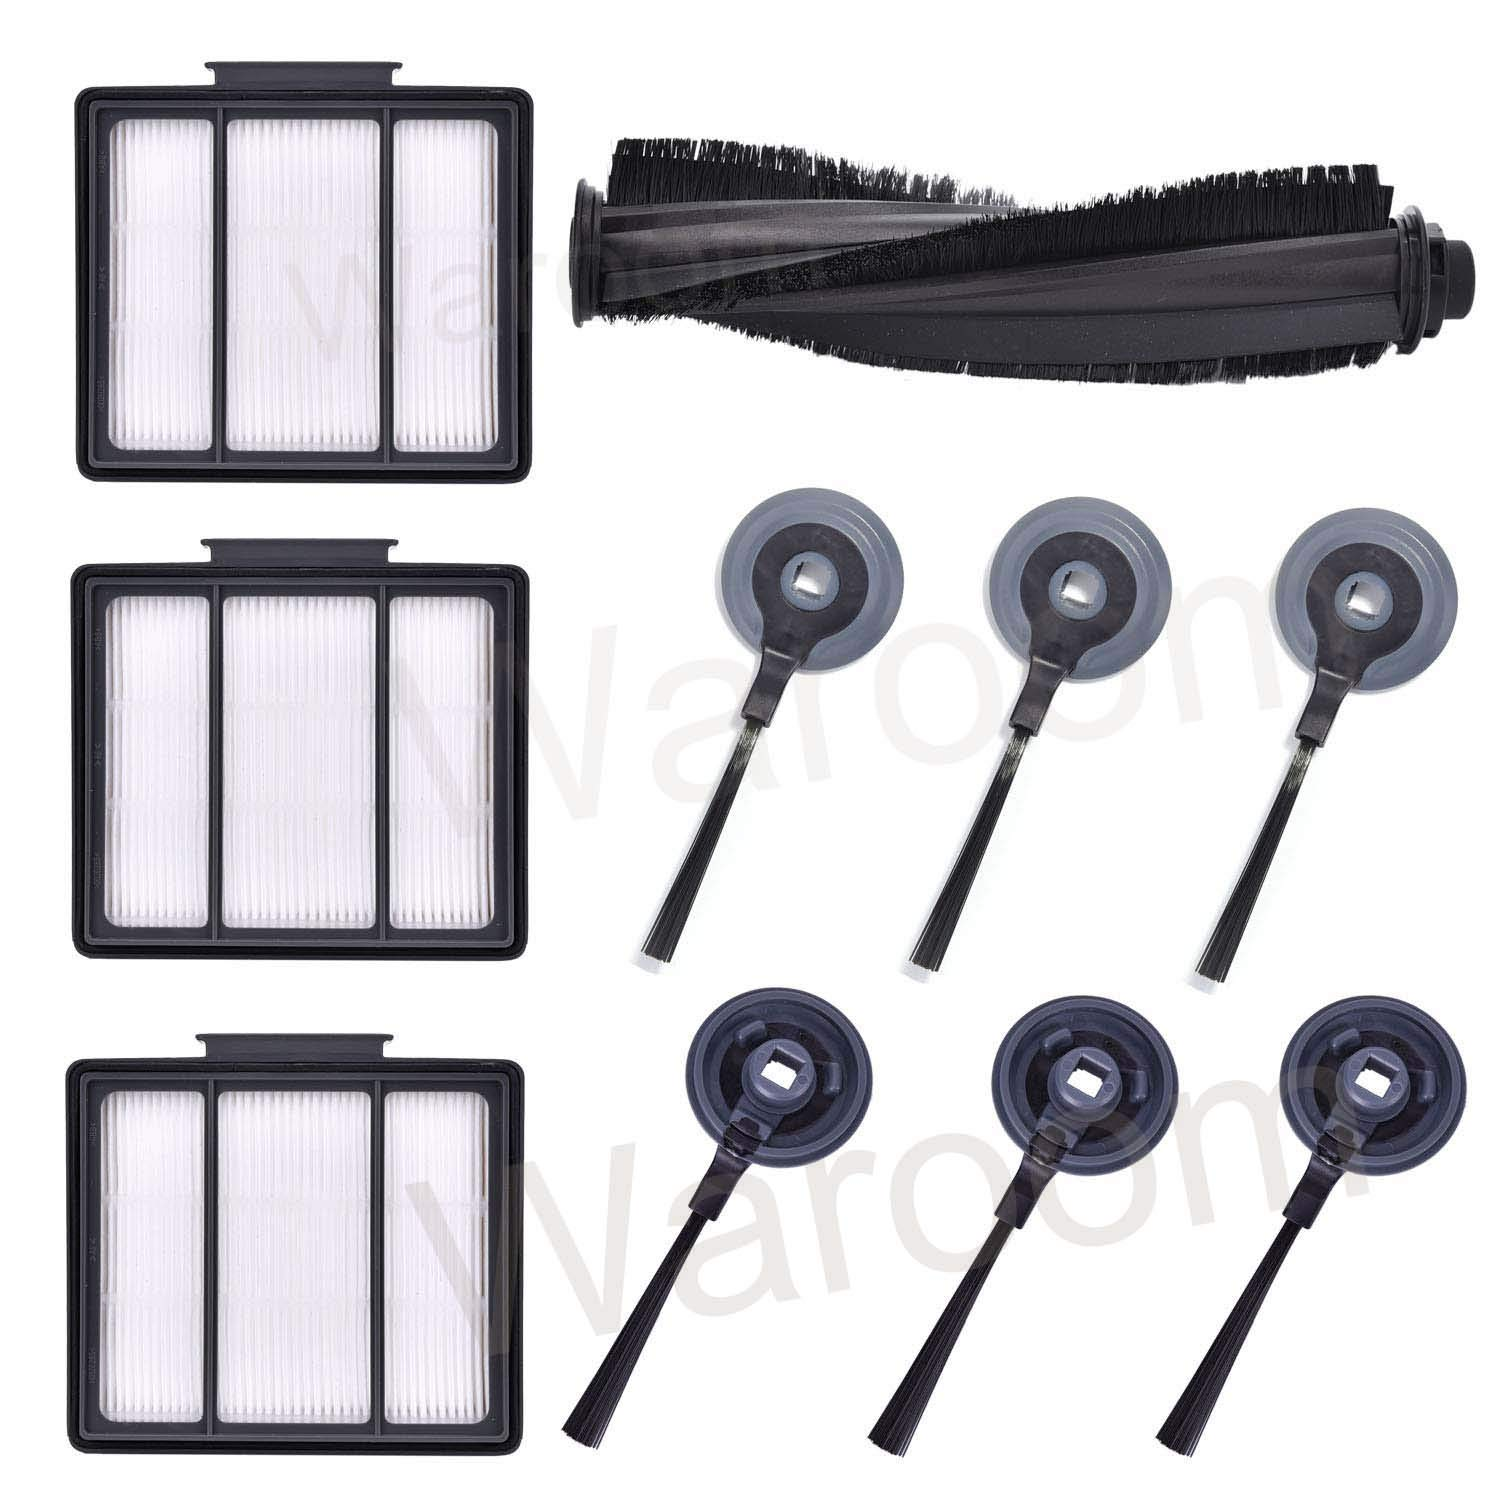 Waroom Vacuum Cleaner Replacement Brushes and Filters for Shark ION Robot RV700_N RV720_N RV750_N RV850 RV850BRN RV851WV RV850BRN/WV, Include 6 Side Brushes+ 3 Pre-Motor Filter+ 1 Main Brush